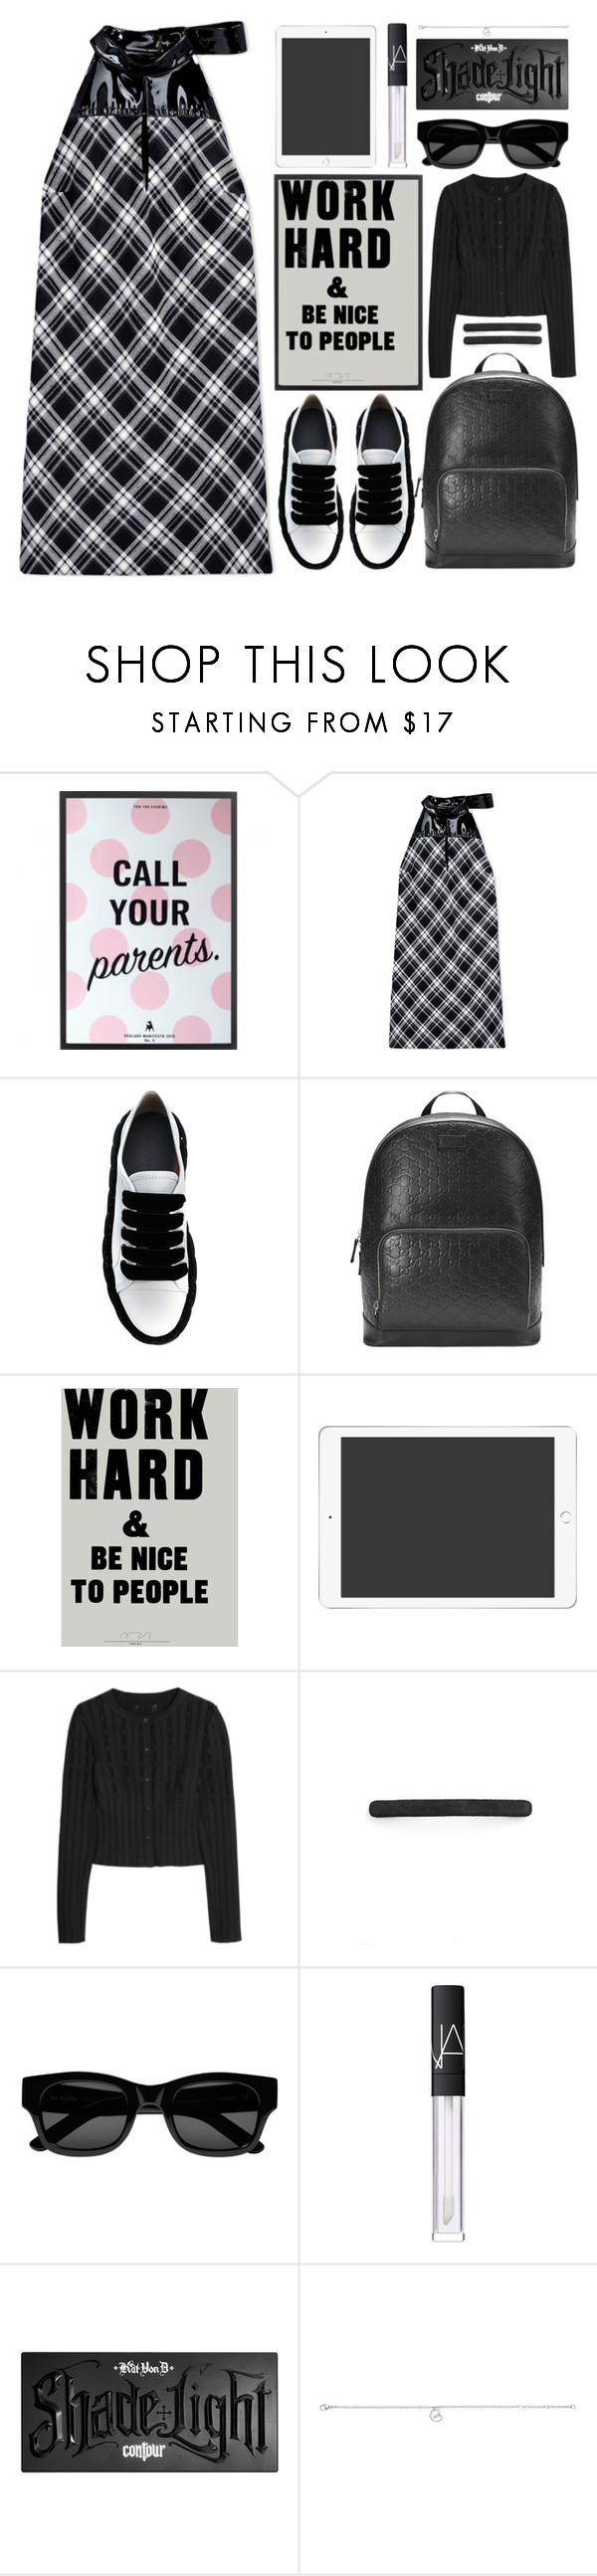 """""""work hard"""" by foundlostme ❤ liked on Polyvore featuring Maison Margiela, Marco de Vincenzo, Gucci, Alaïa, L. Erickson, Sun Buddies, NARS Cosmetics, Kat Von D, Georg Jensen and whitesneakers"""